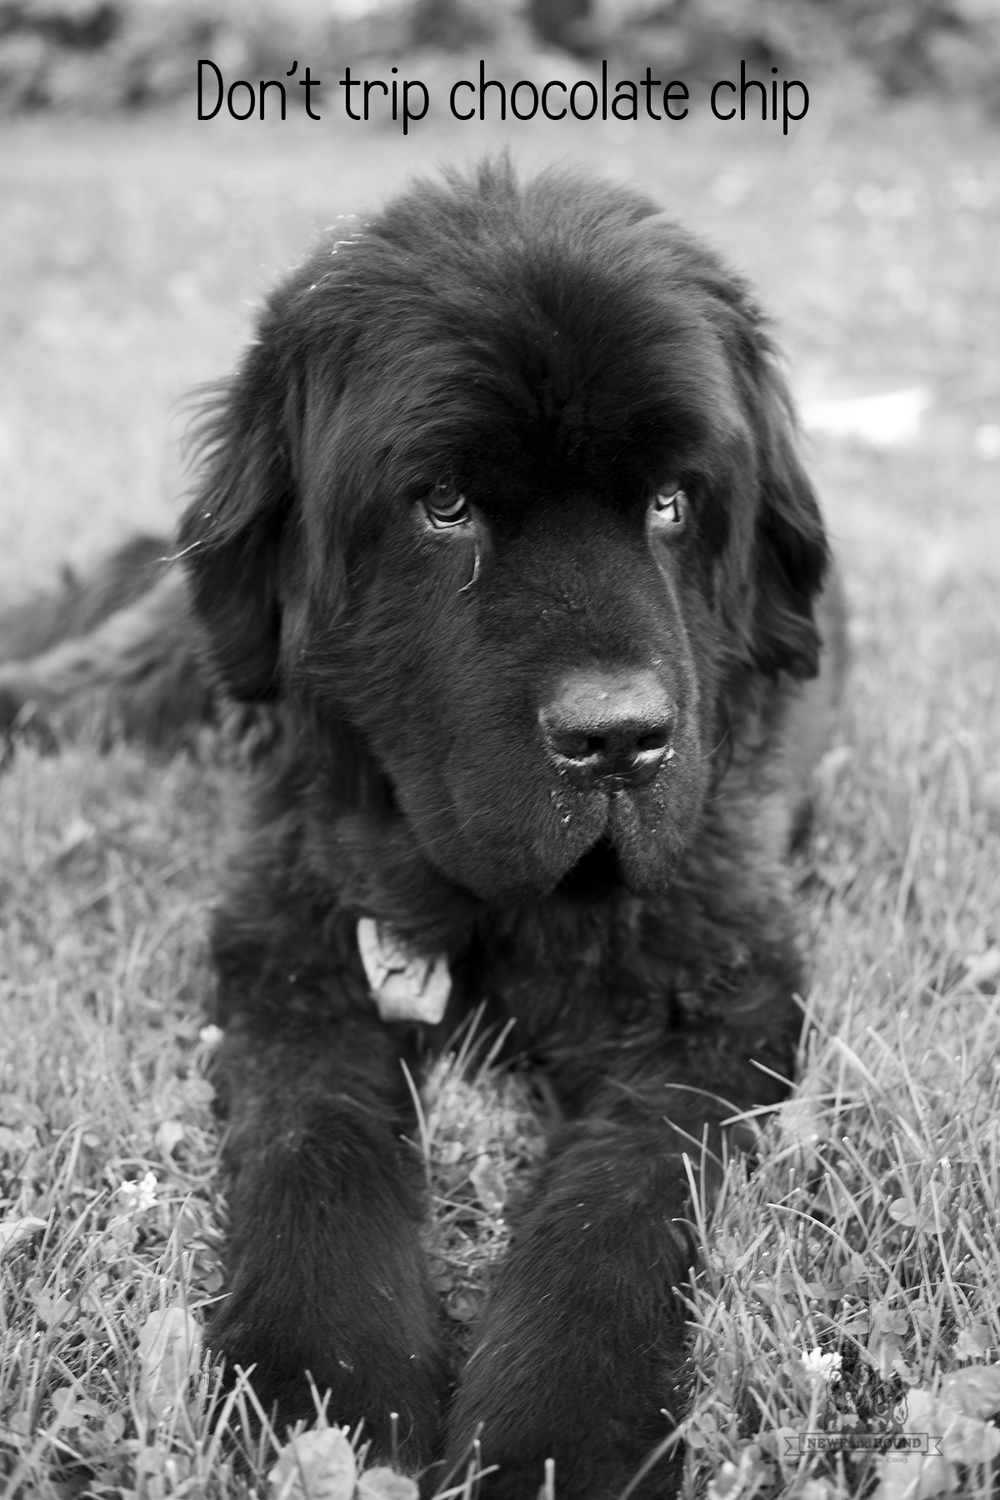 20131016_So-They-Say_Dont-trip_0078.jpg, newfoundland, newfoundland dog, quotes, dog, newfie